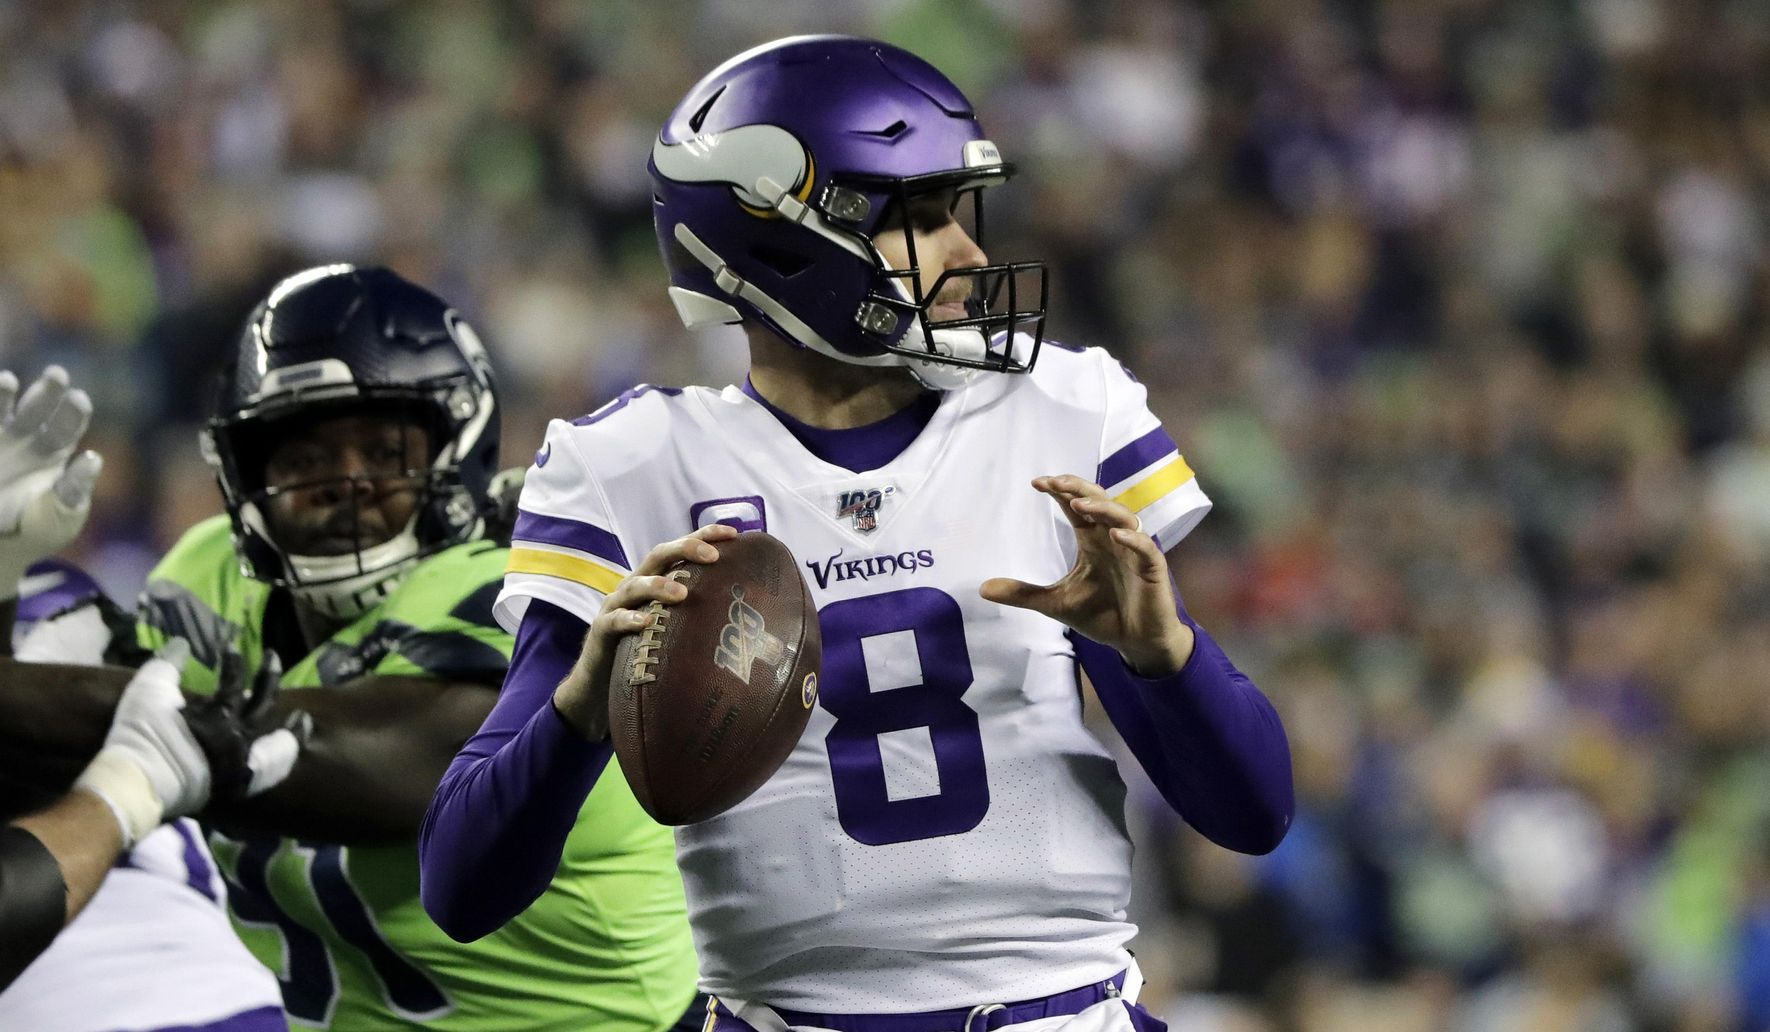 Vikings_seahawks_football_71896_c0-157-3742-2338_s1770x1032